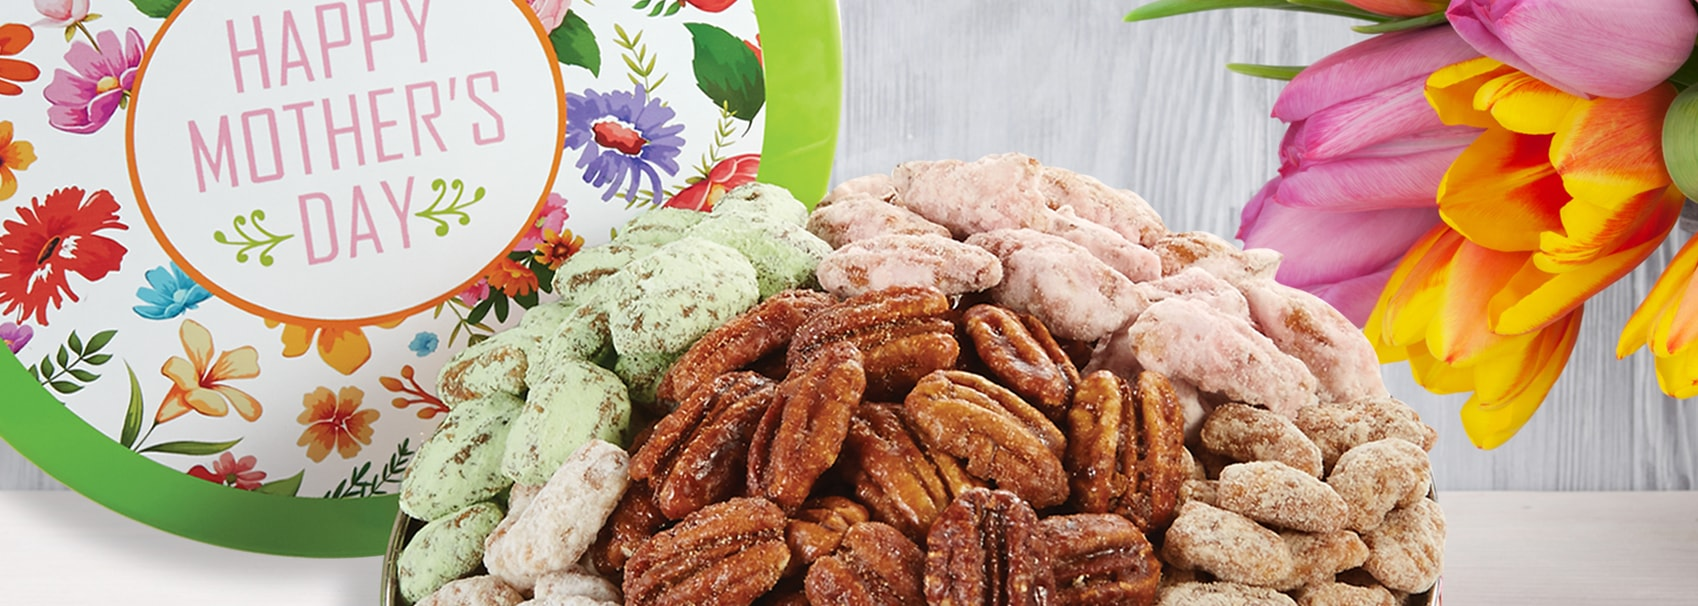 Great Mothers Day Pecan Gifts